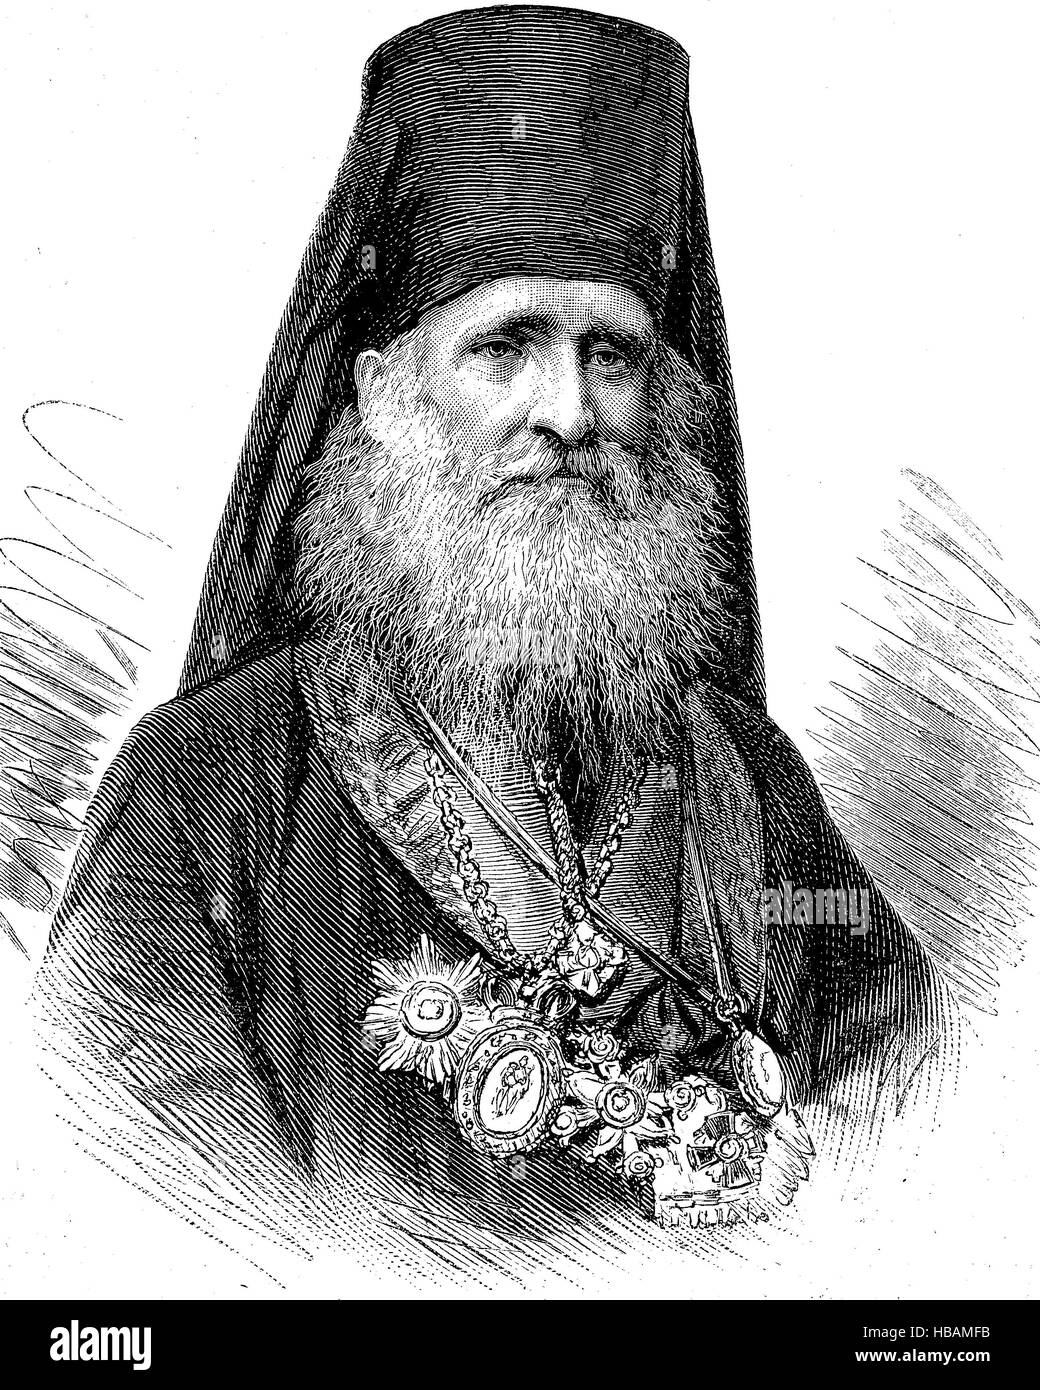 Michail, Metropolitan bishop of Serbia, born 1830, hictorical illustration from 1880 - Stock Image